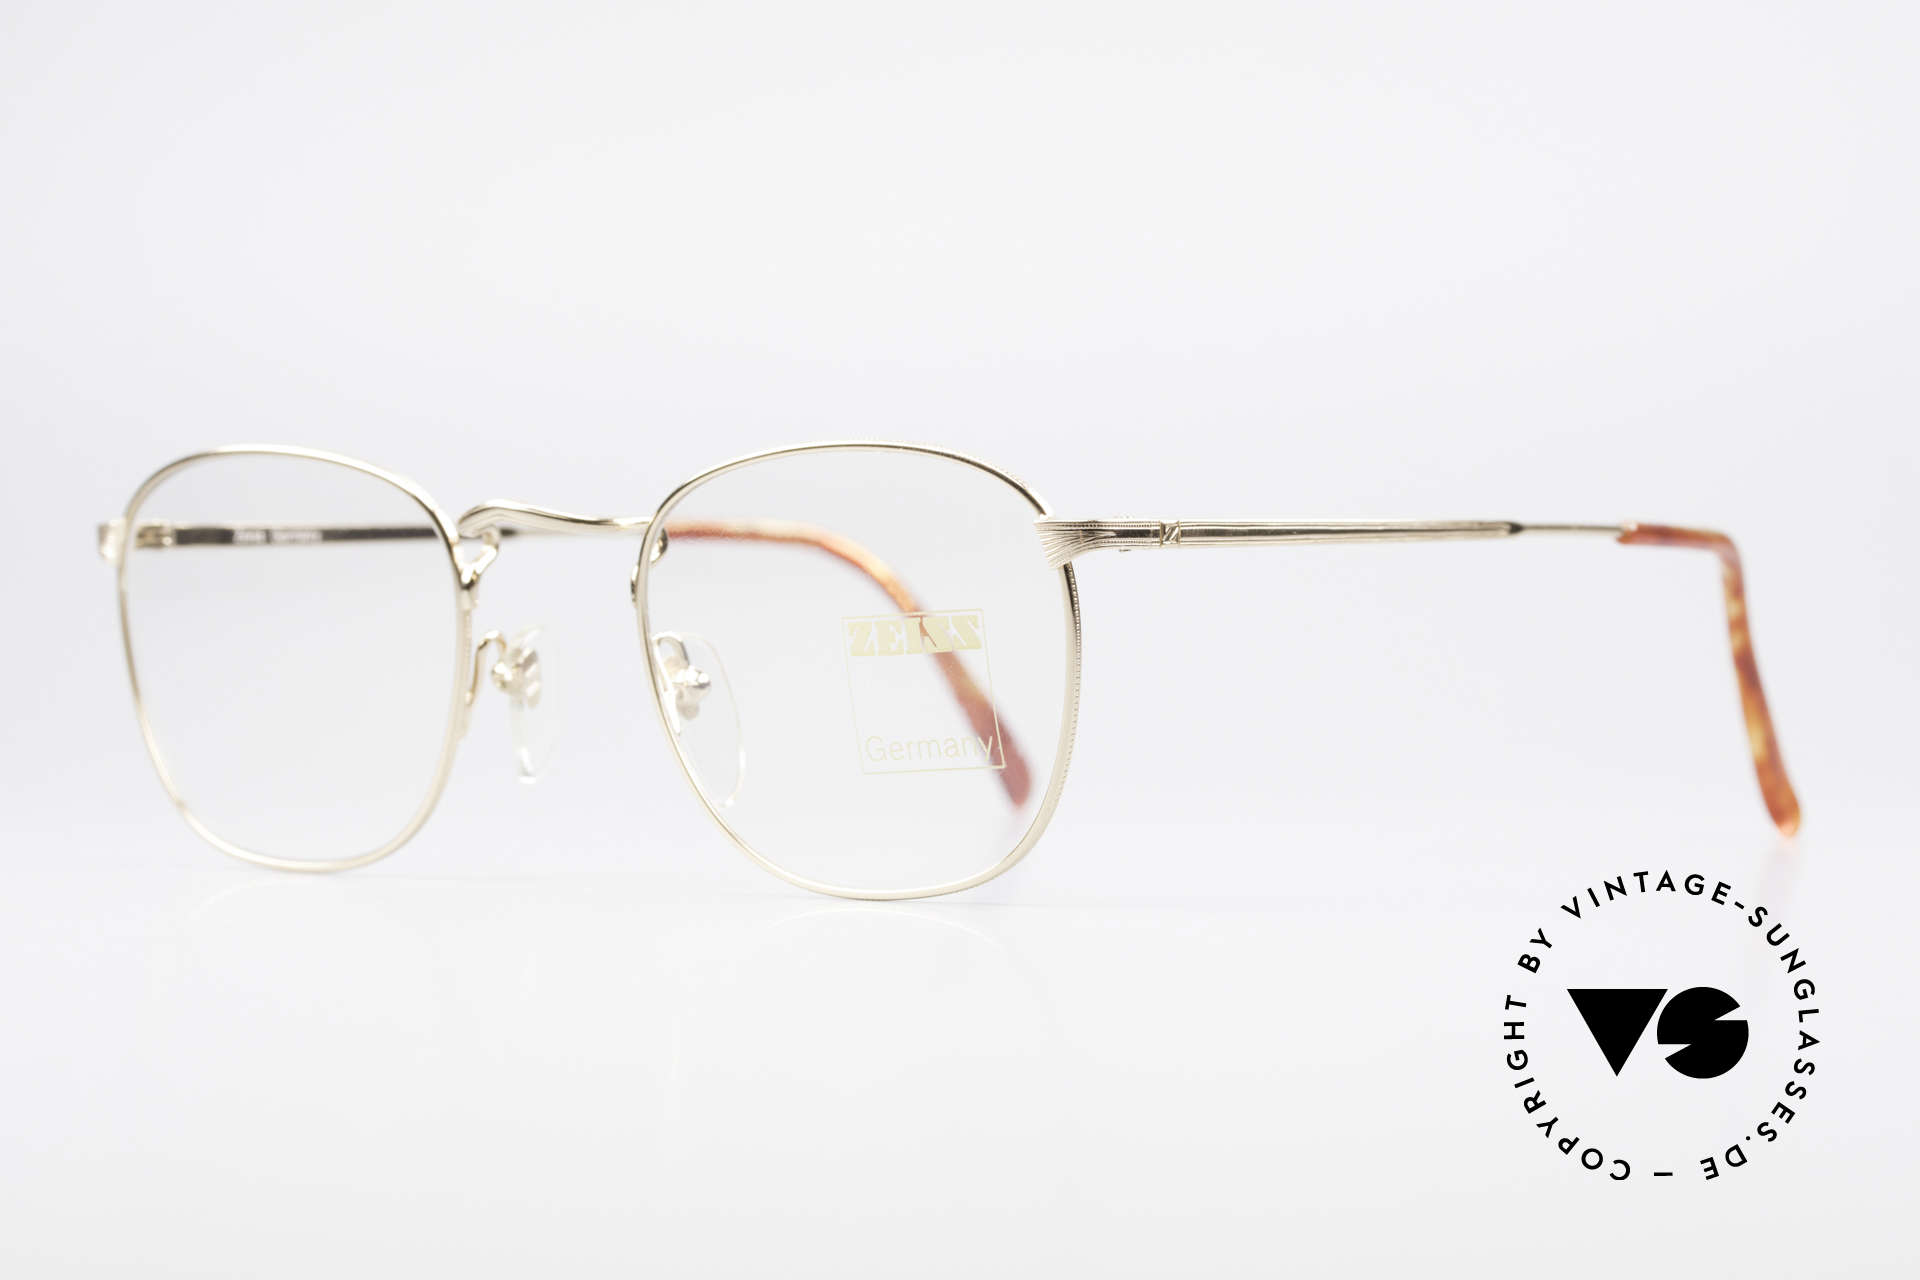 Zeiss 5988 Old Vintage 90's Glasses Men, timeless, monolithic design in a SMALL size (122mm), Made for Men